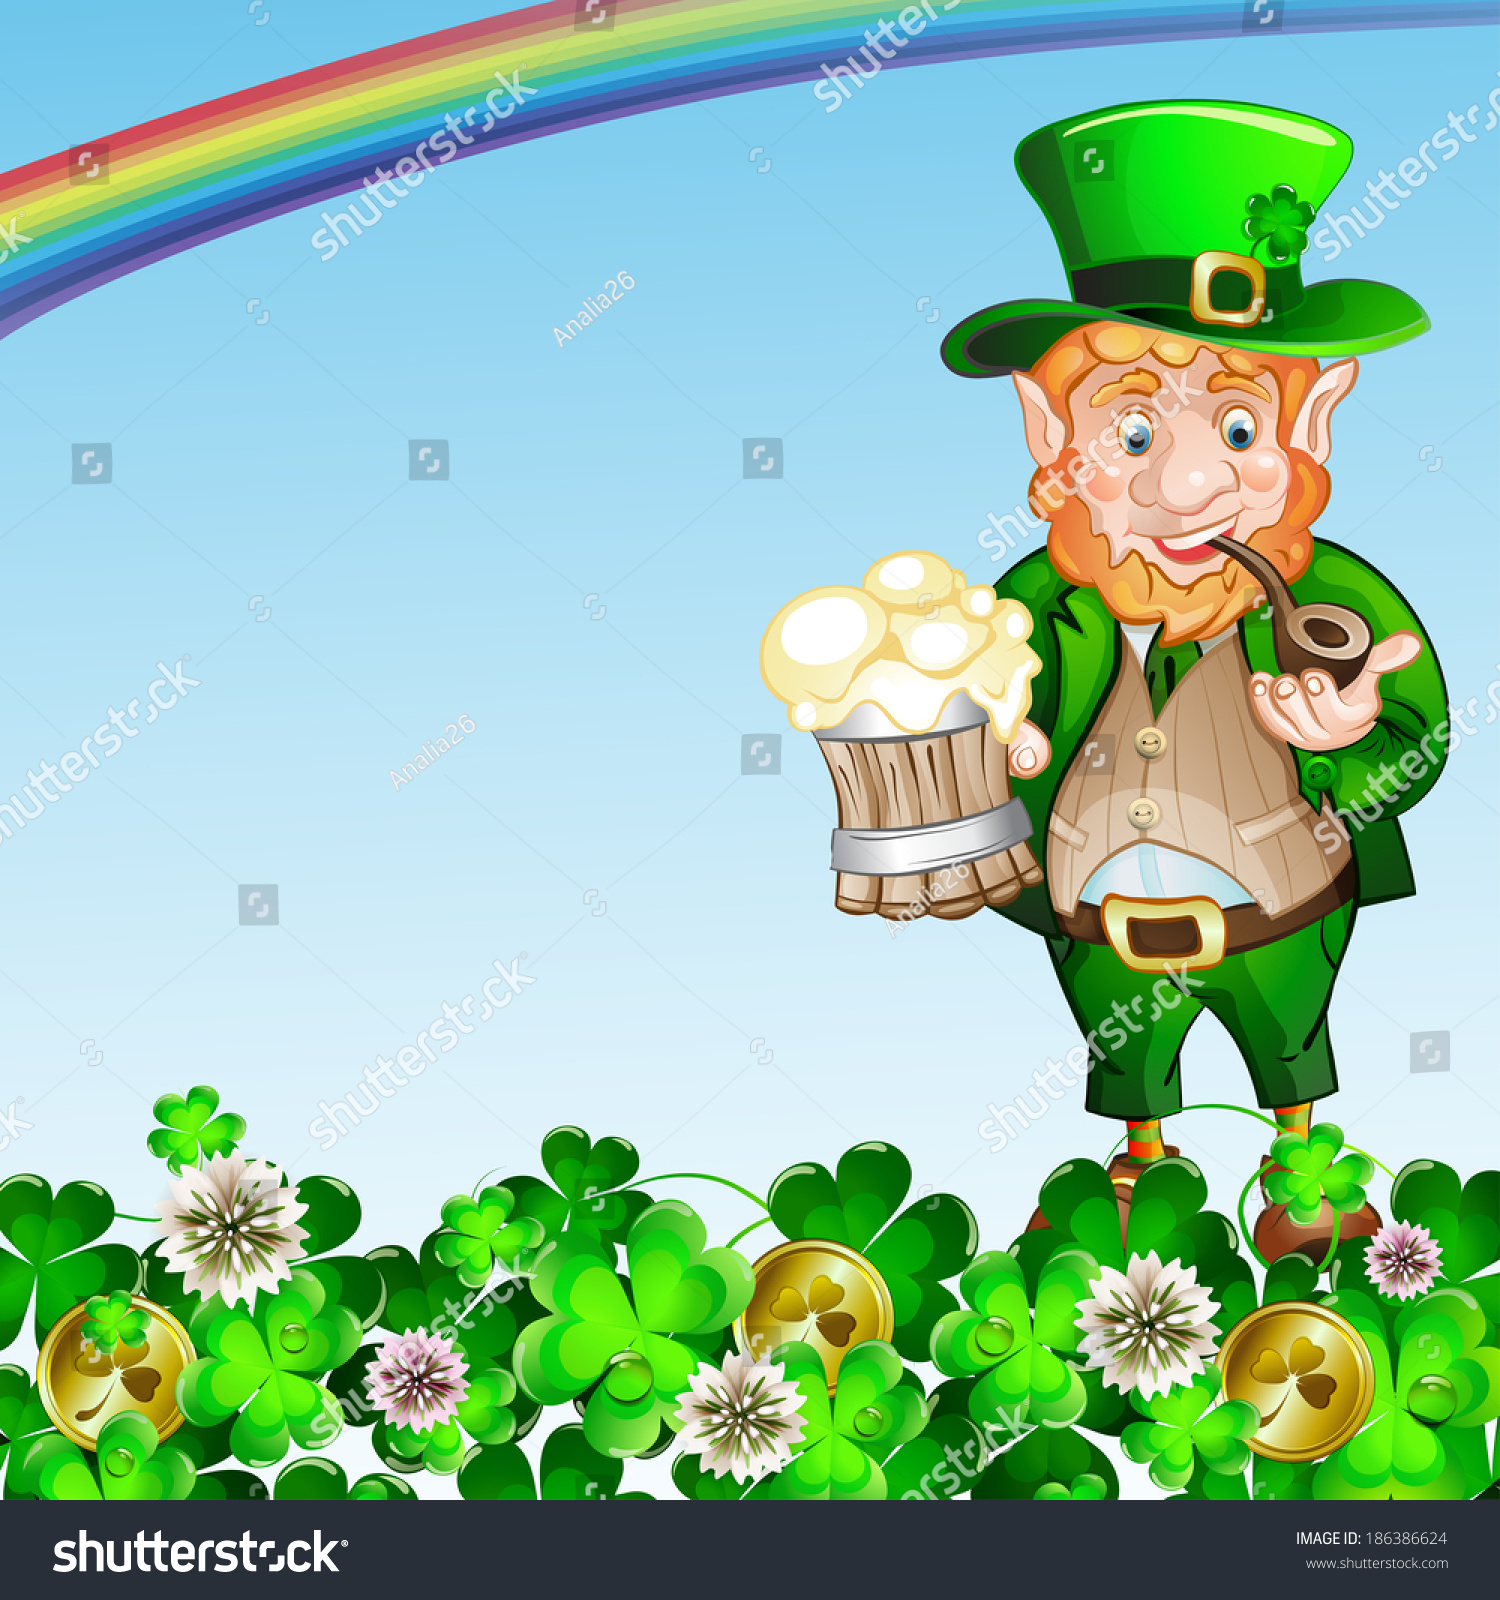 16 St. Patrick's Day Quotes to Celebrate All Things Irish. If you haven't found your four-leaf clover yet, try these sayings for good luck.